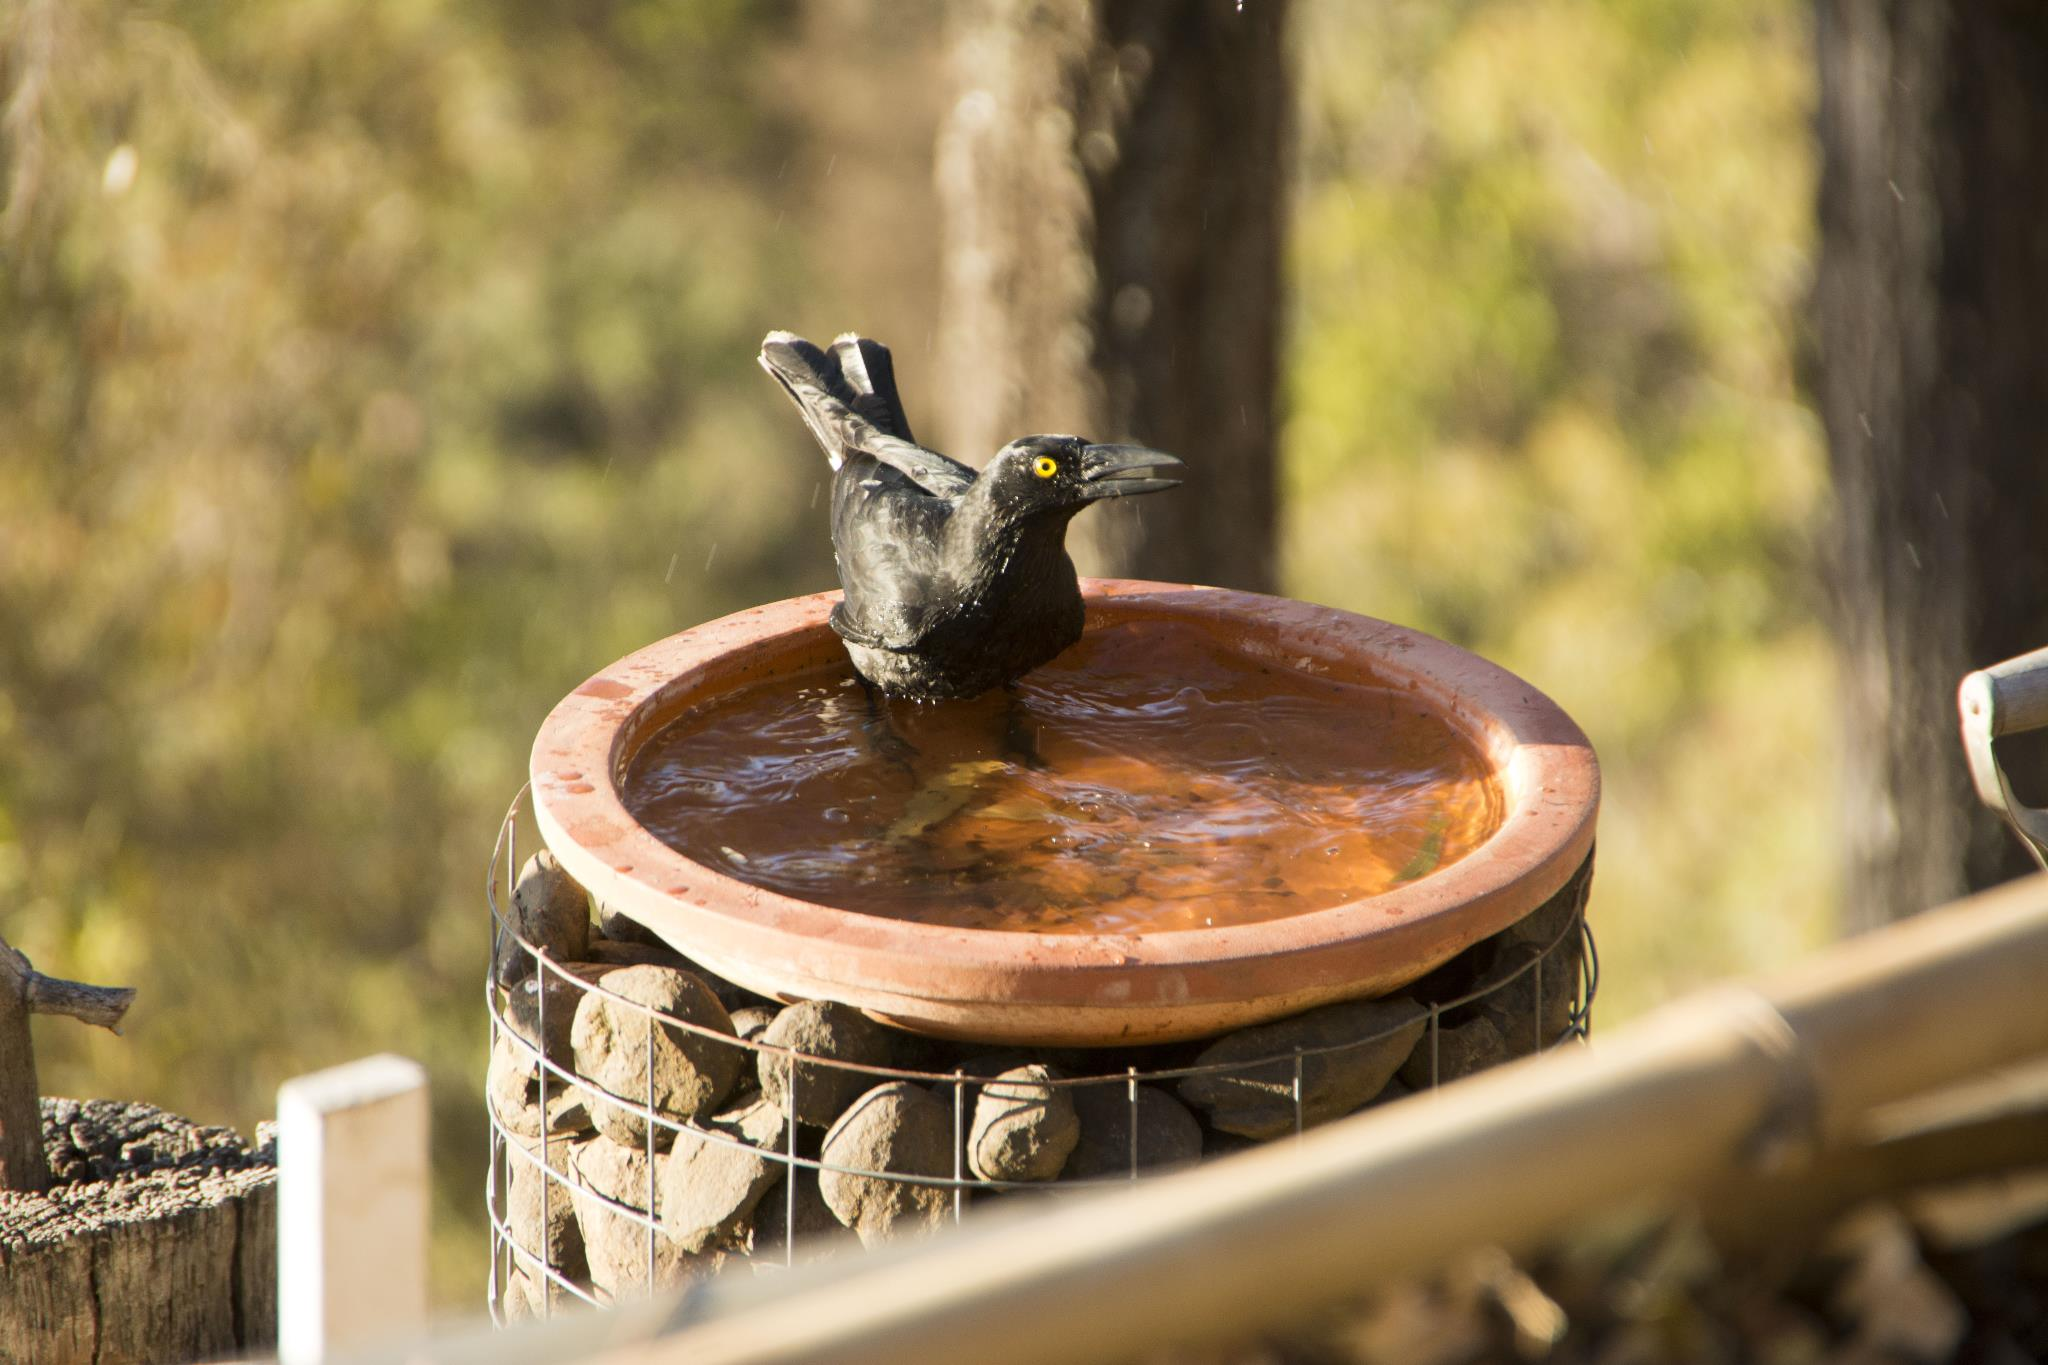 Penny the Currawong taking a dip